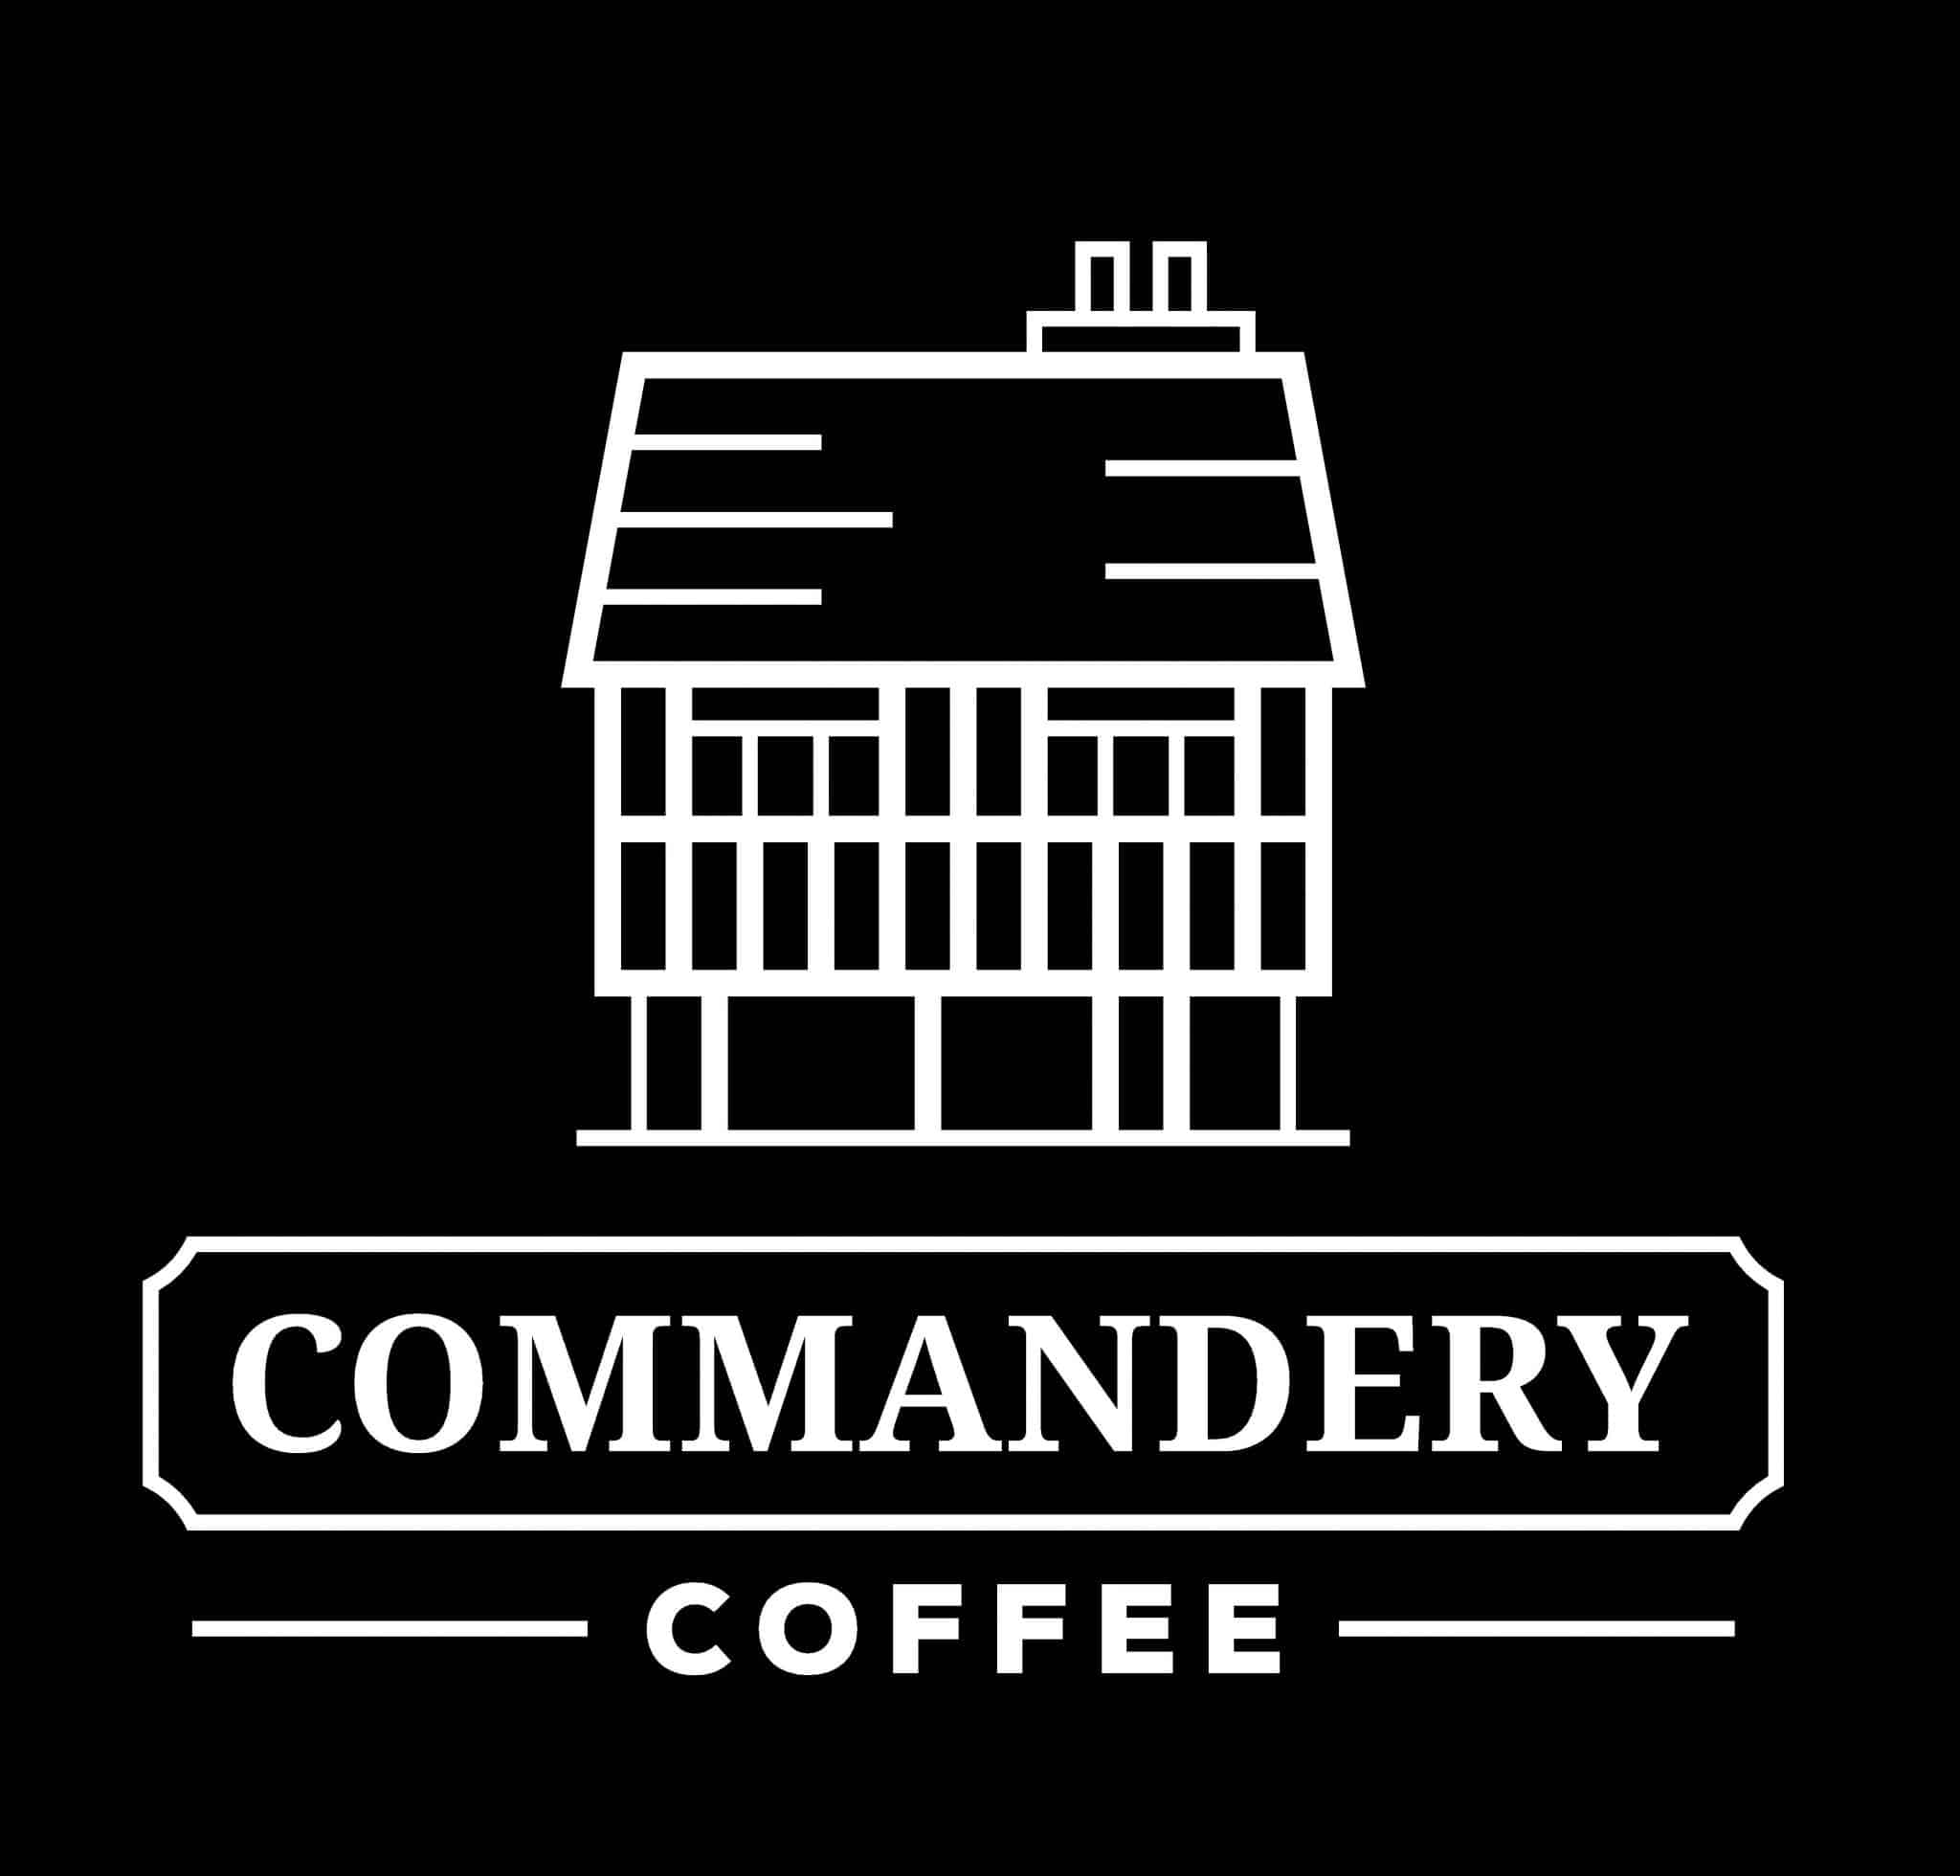 Commandery Coffee logo